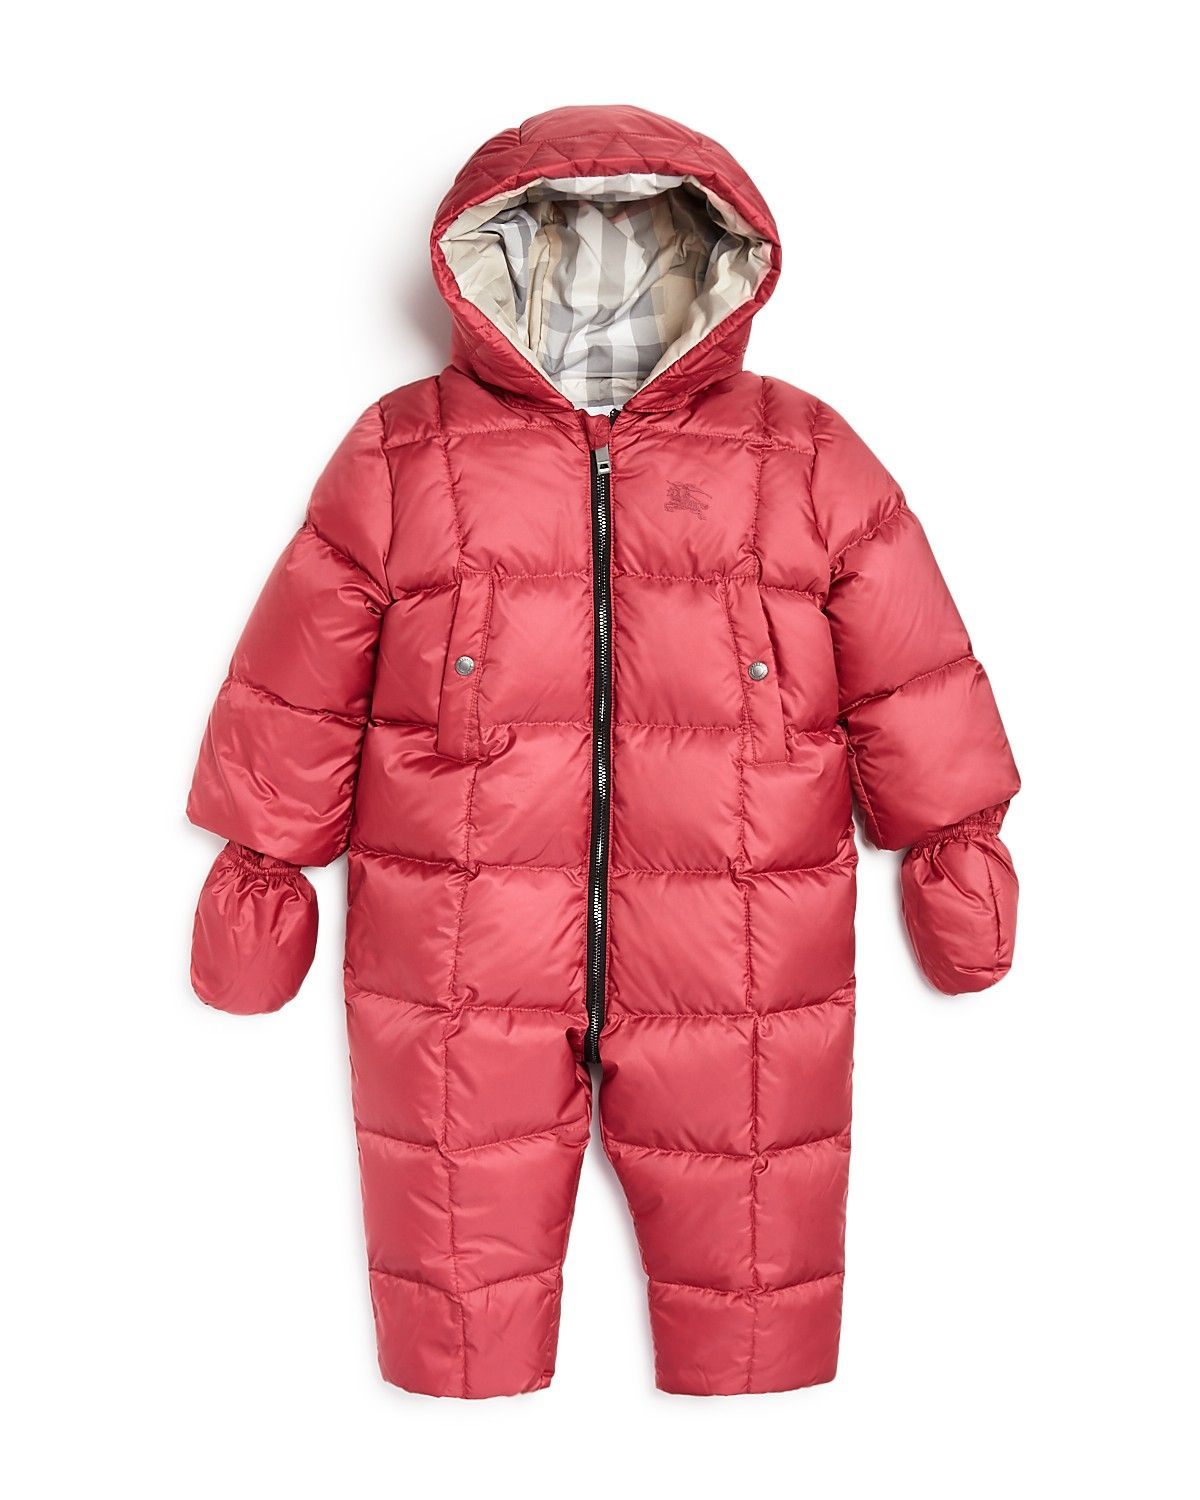 Burberry Girls Skylar Snowsuit Baby Kids Baby Baby Girl 0 24 Months Bloomingdale S Baby In Snow Snow Suit Baby Snowsuit